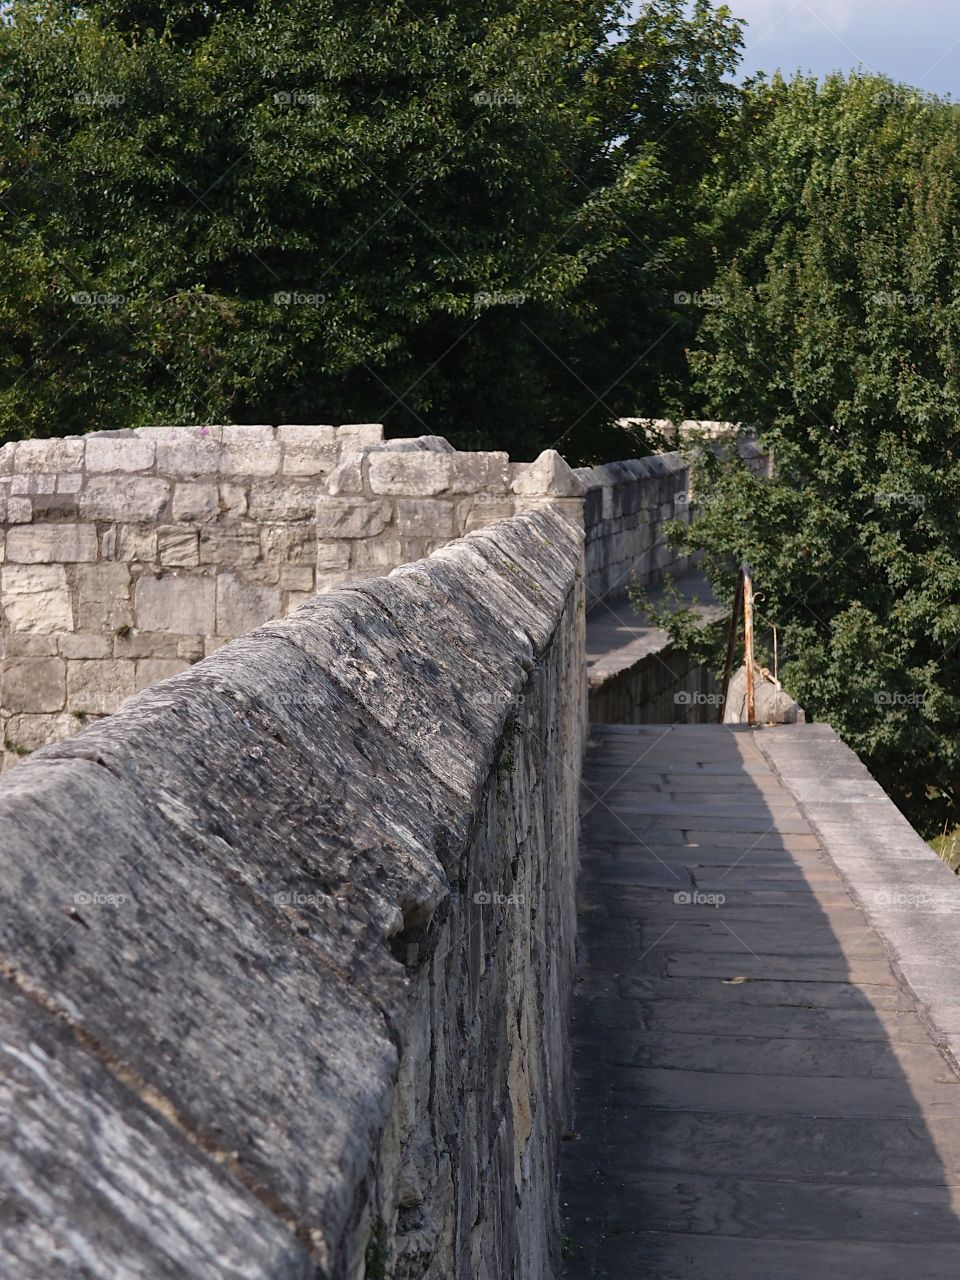 The historic fortified York Wall made of massive stone and a nice walkway surround the older parts of the city.